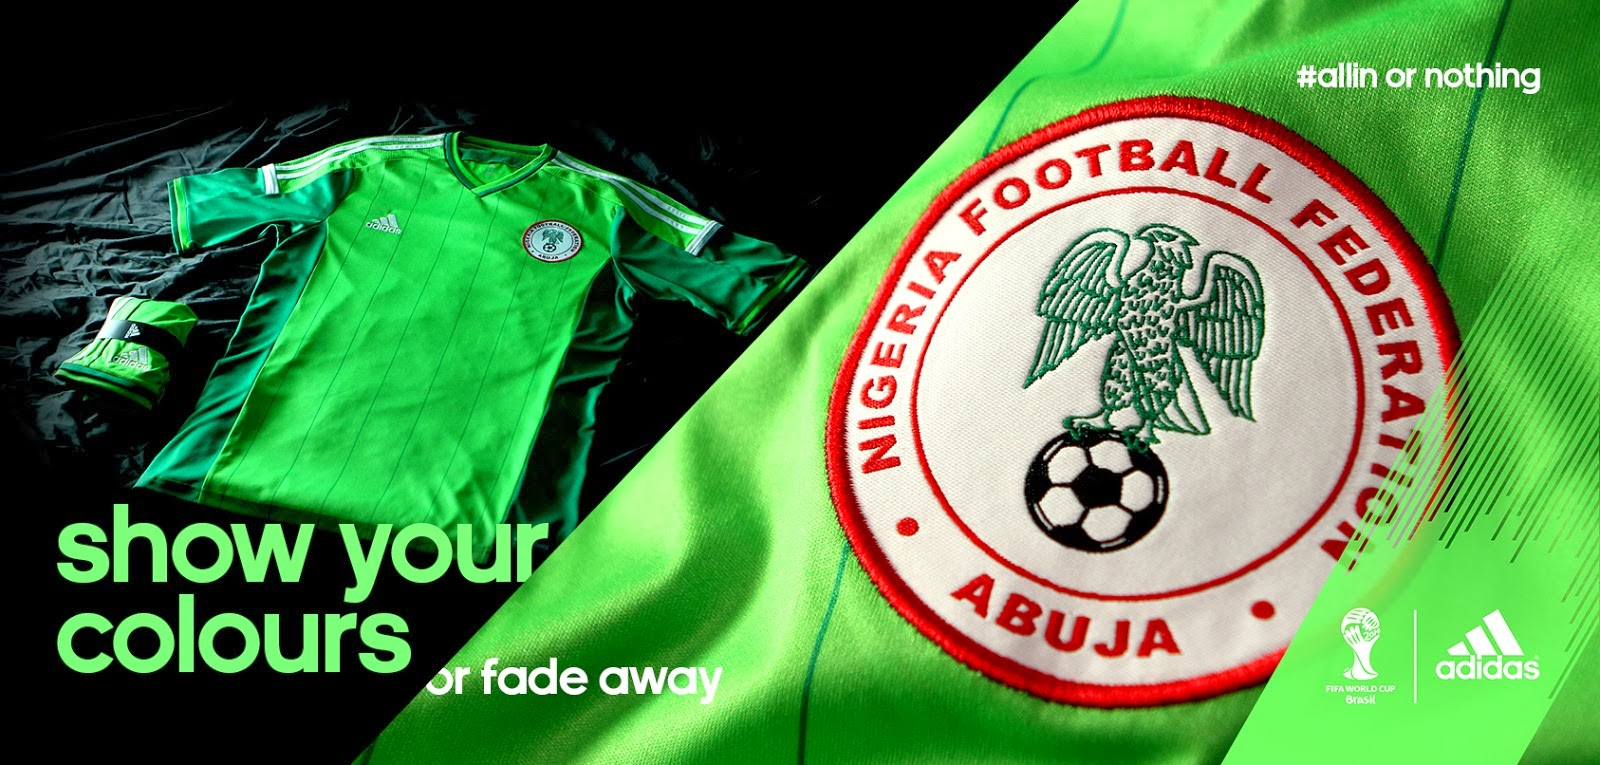 competitive price 35aa9 b42f1 Pro Soccer: adidas Launches New Nigeria National Team Kits